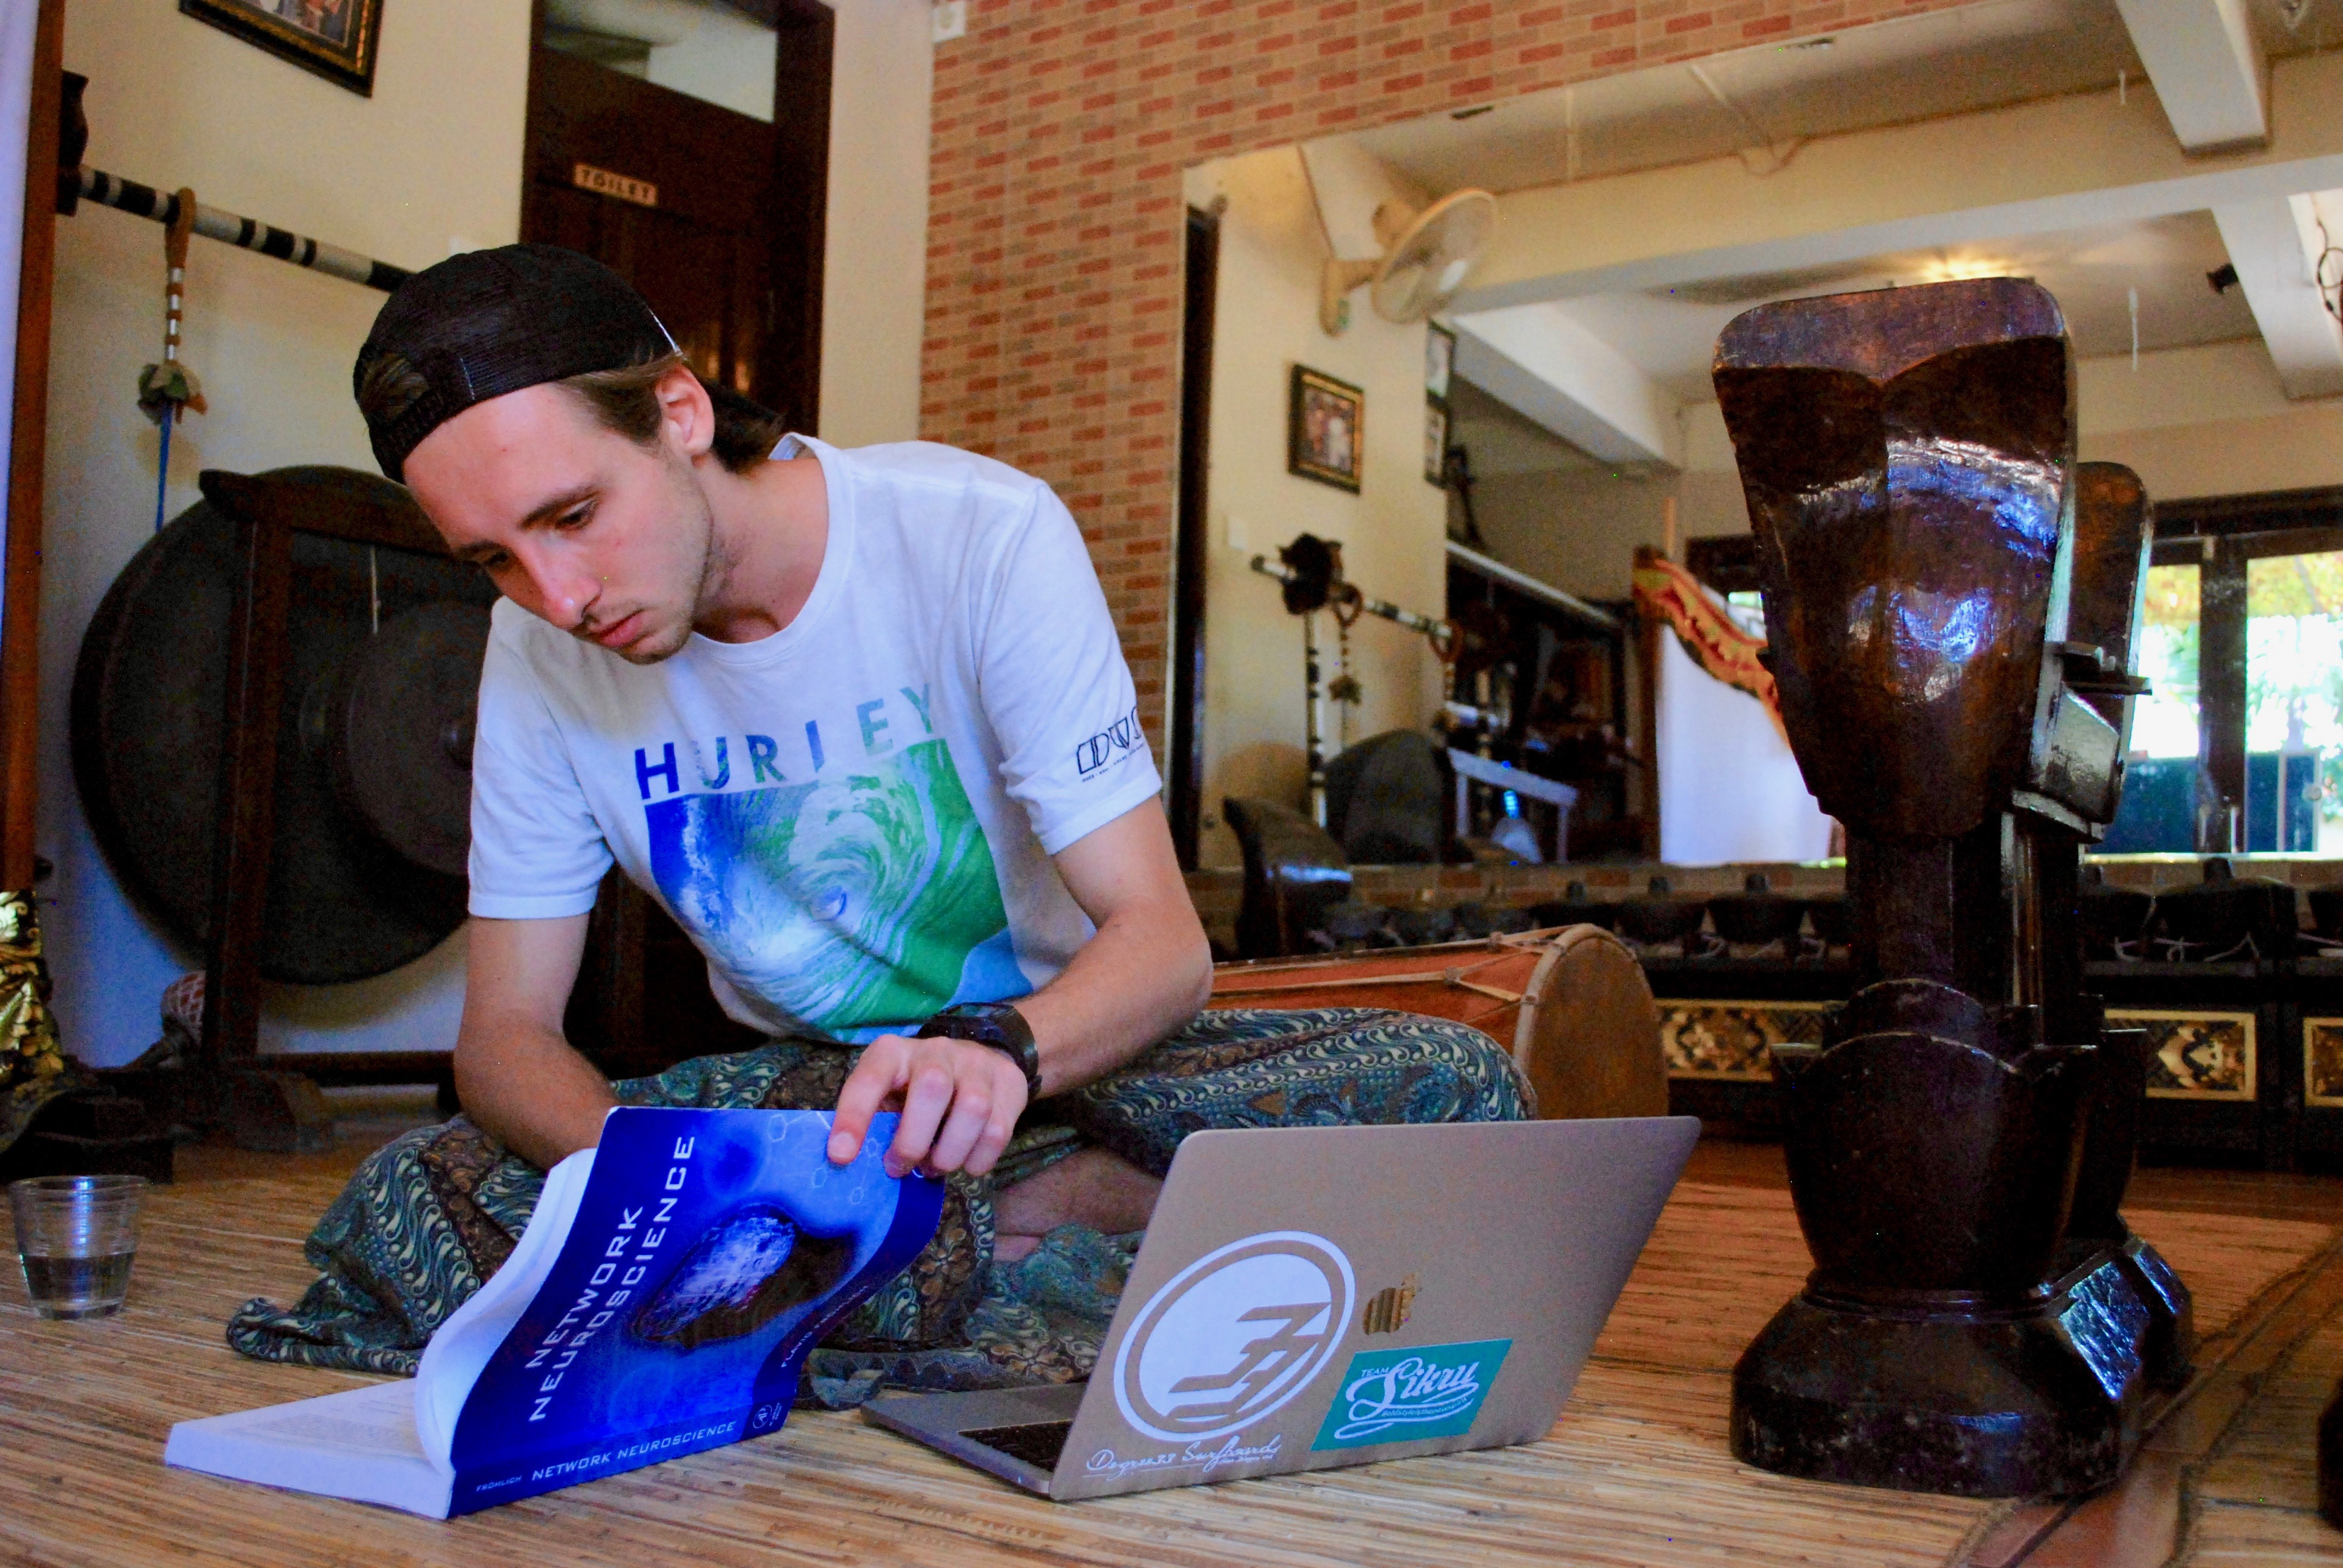 Trevor McPherson studying in Indonesia